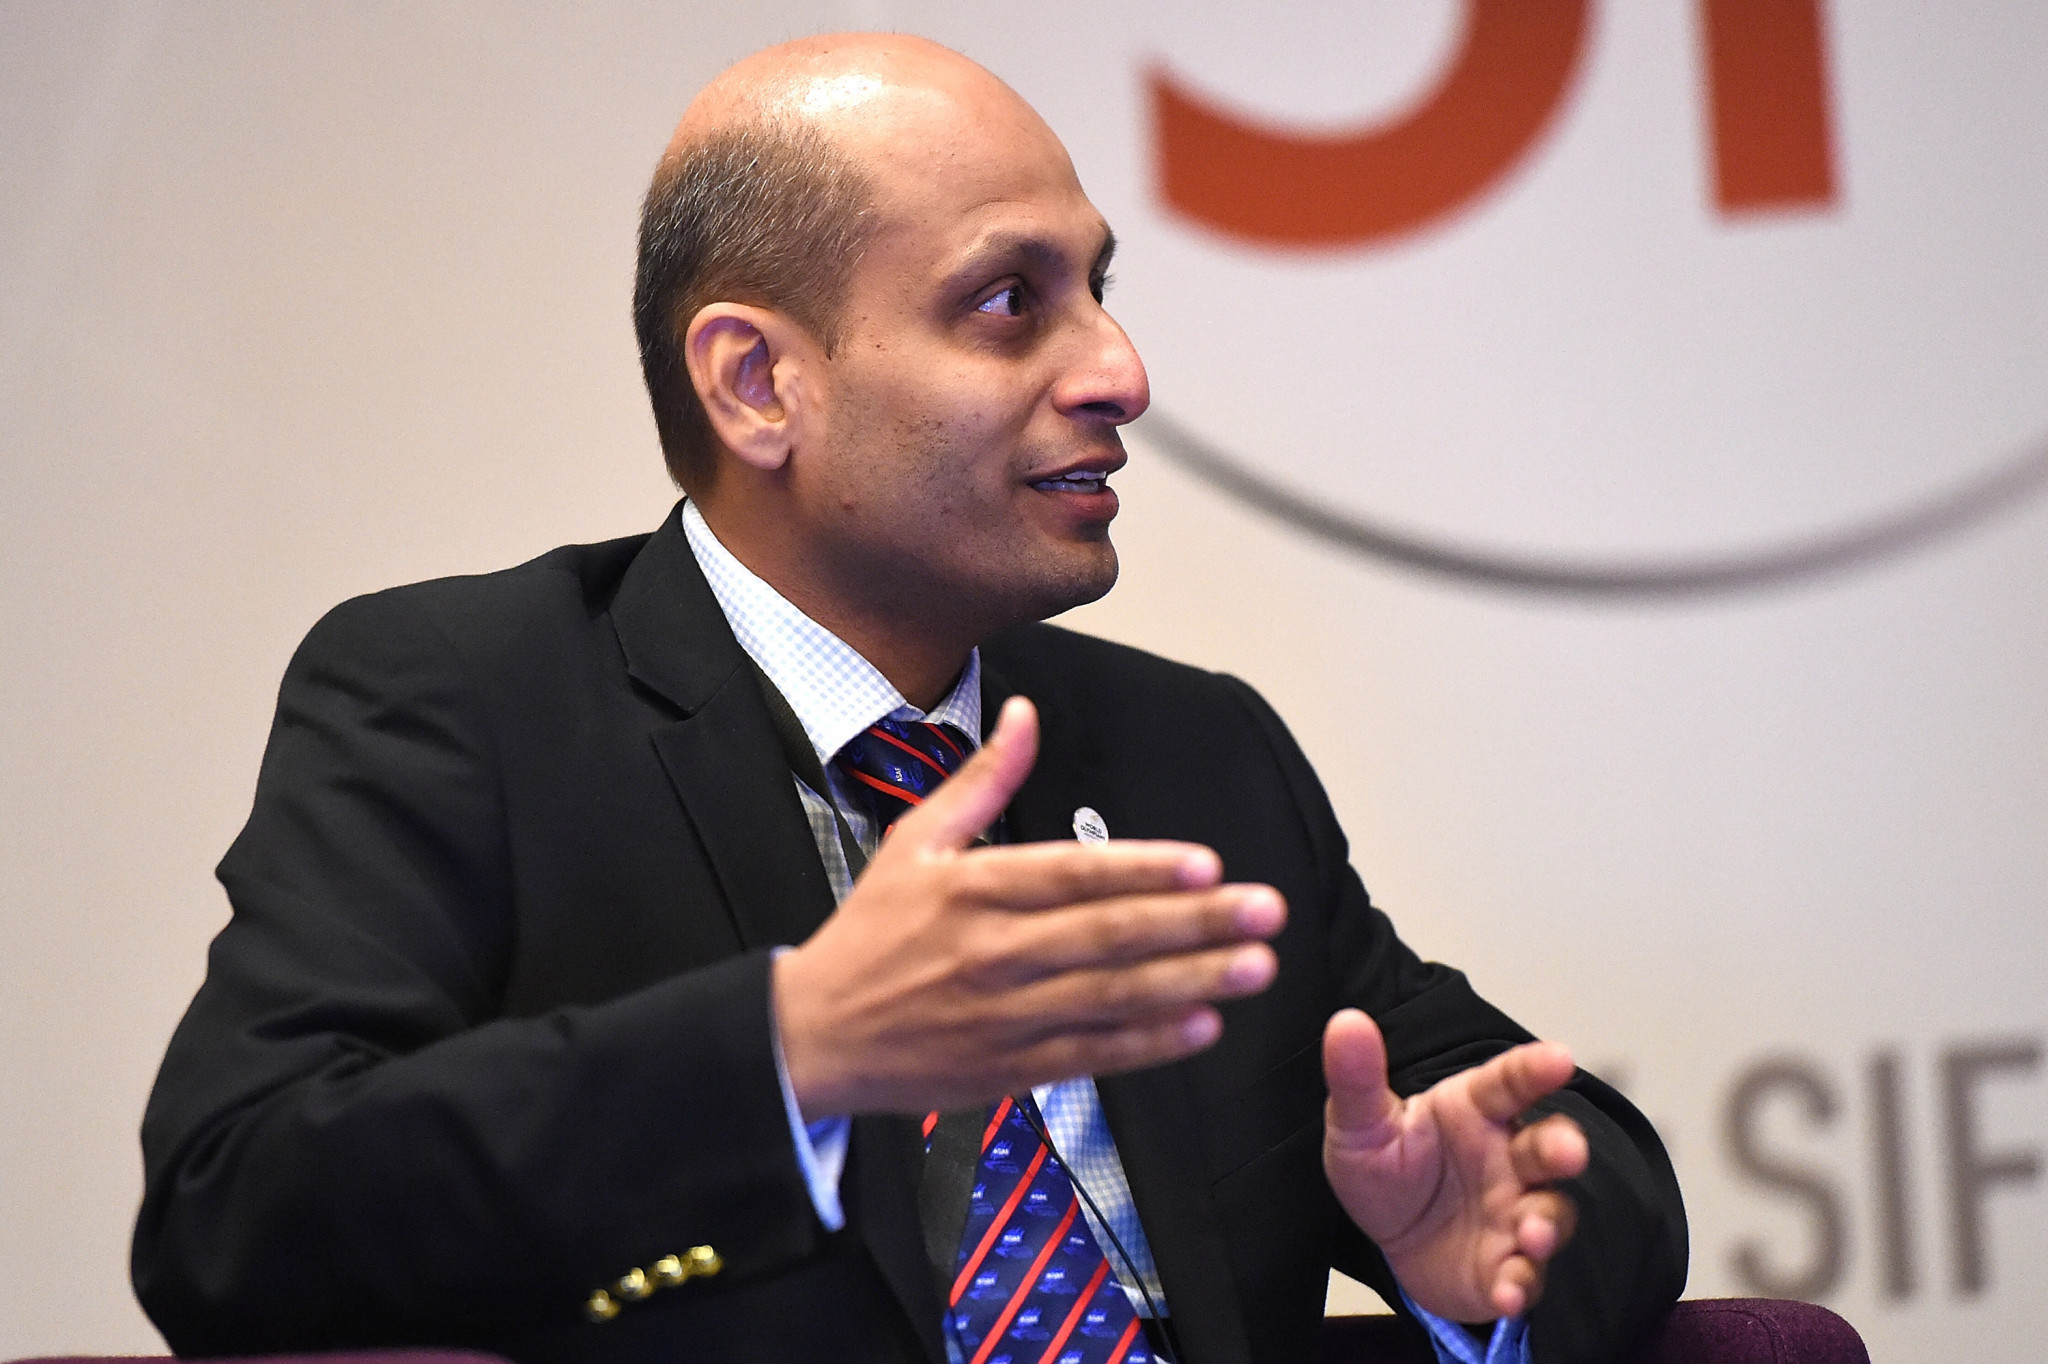 After being re-elected unopposed as ASAF President Dr Shroff said he was targeting helping more countries in Asia to develop stronger sailing programmes ©Getty Images